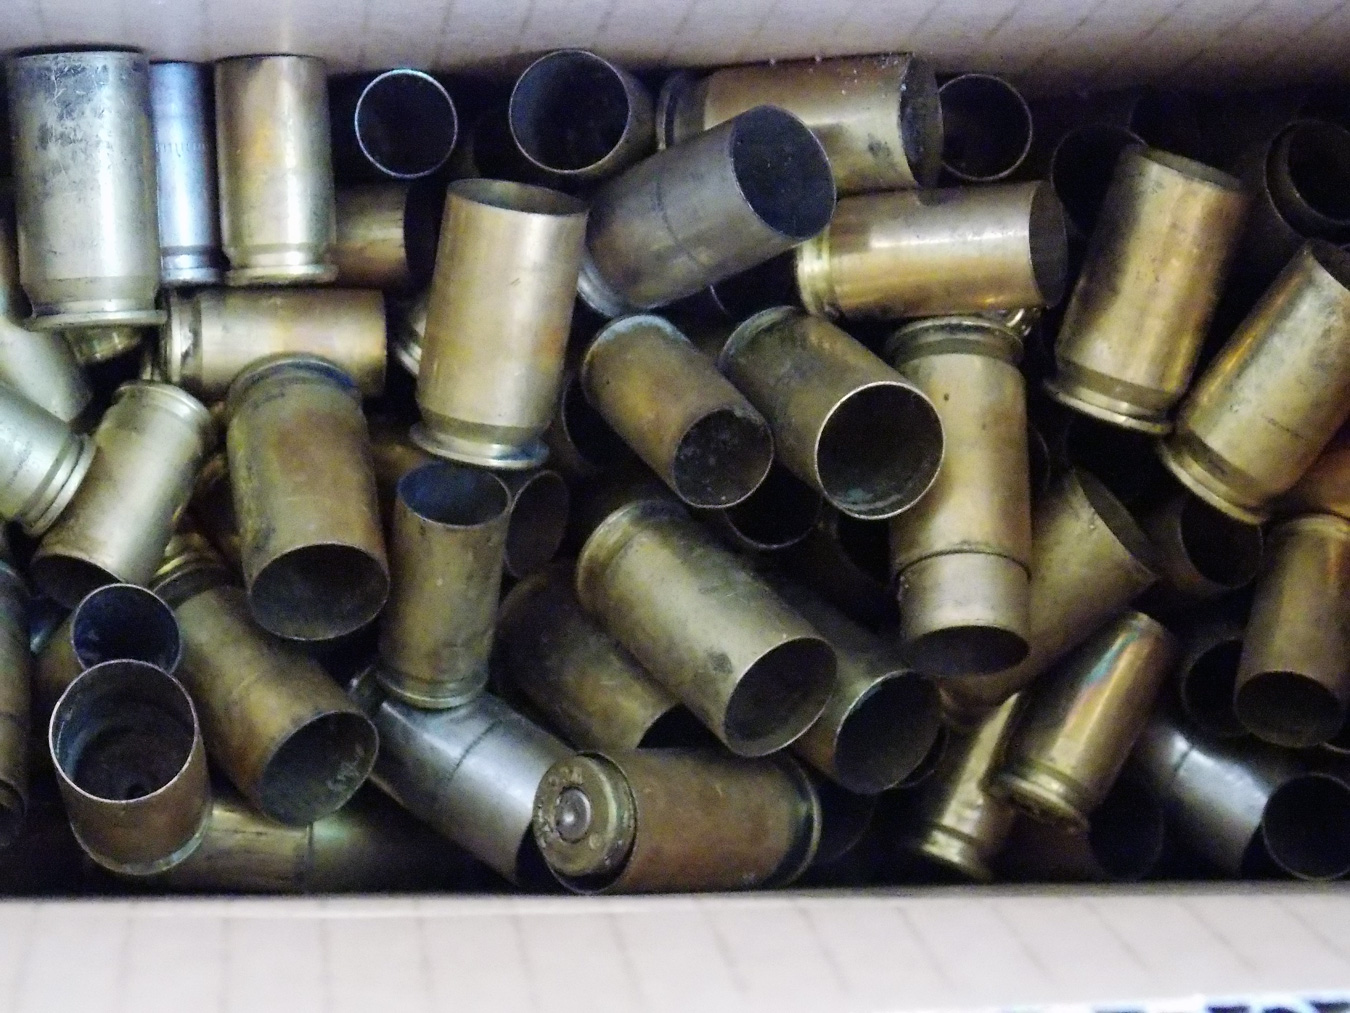 Empty brass cartridges for a pistol